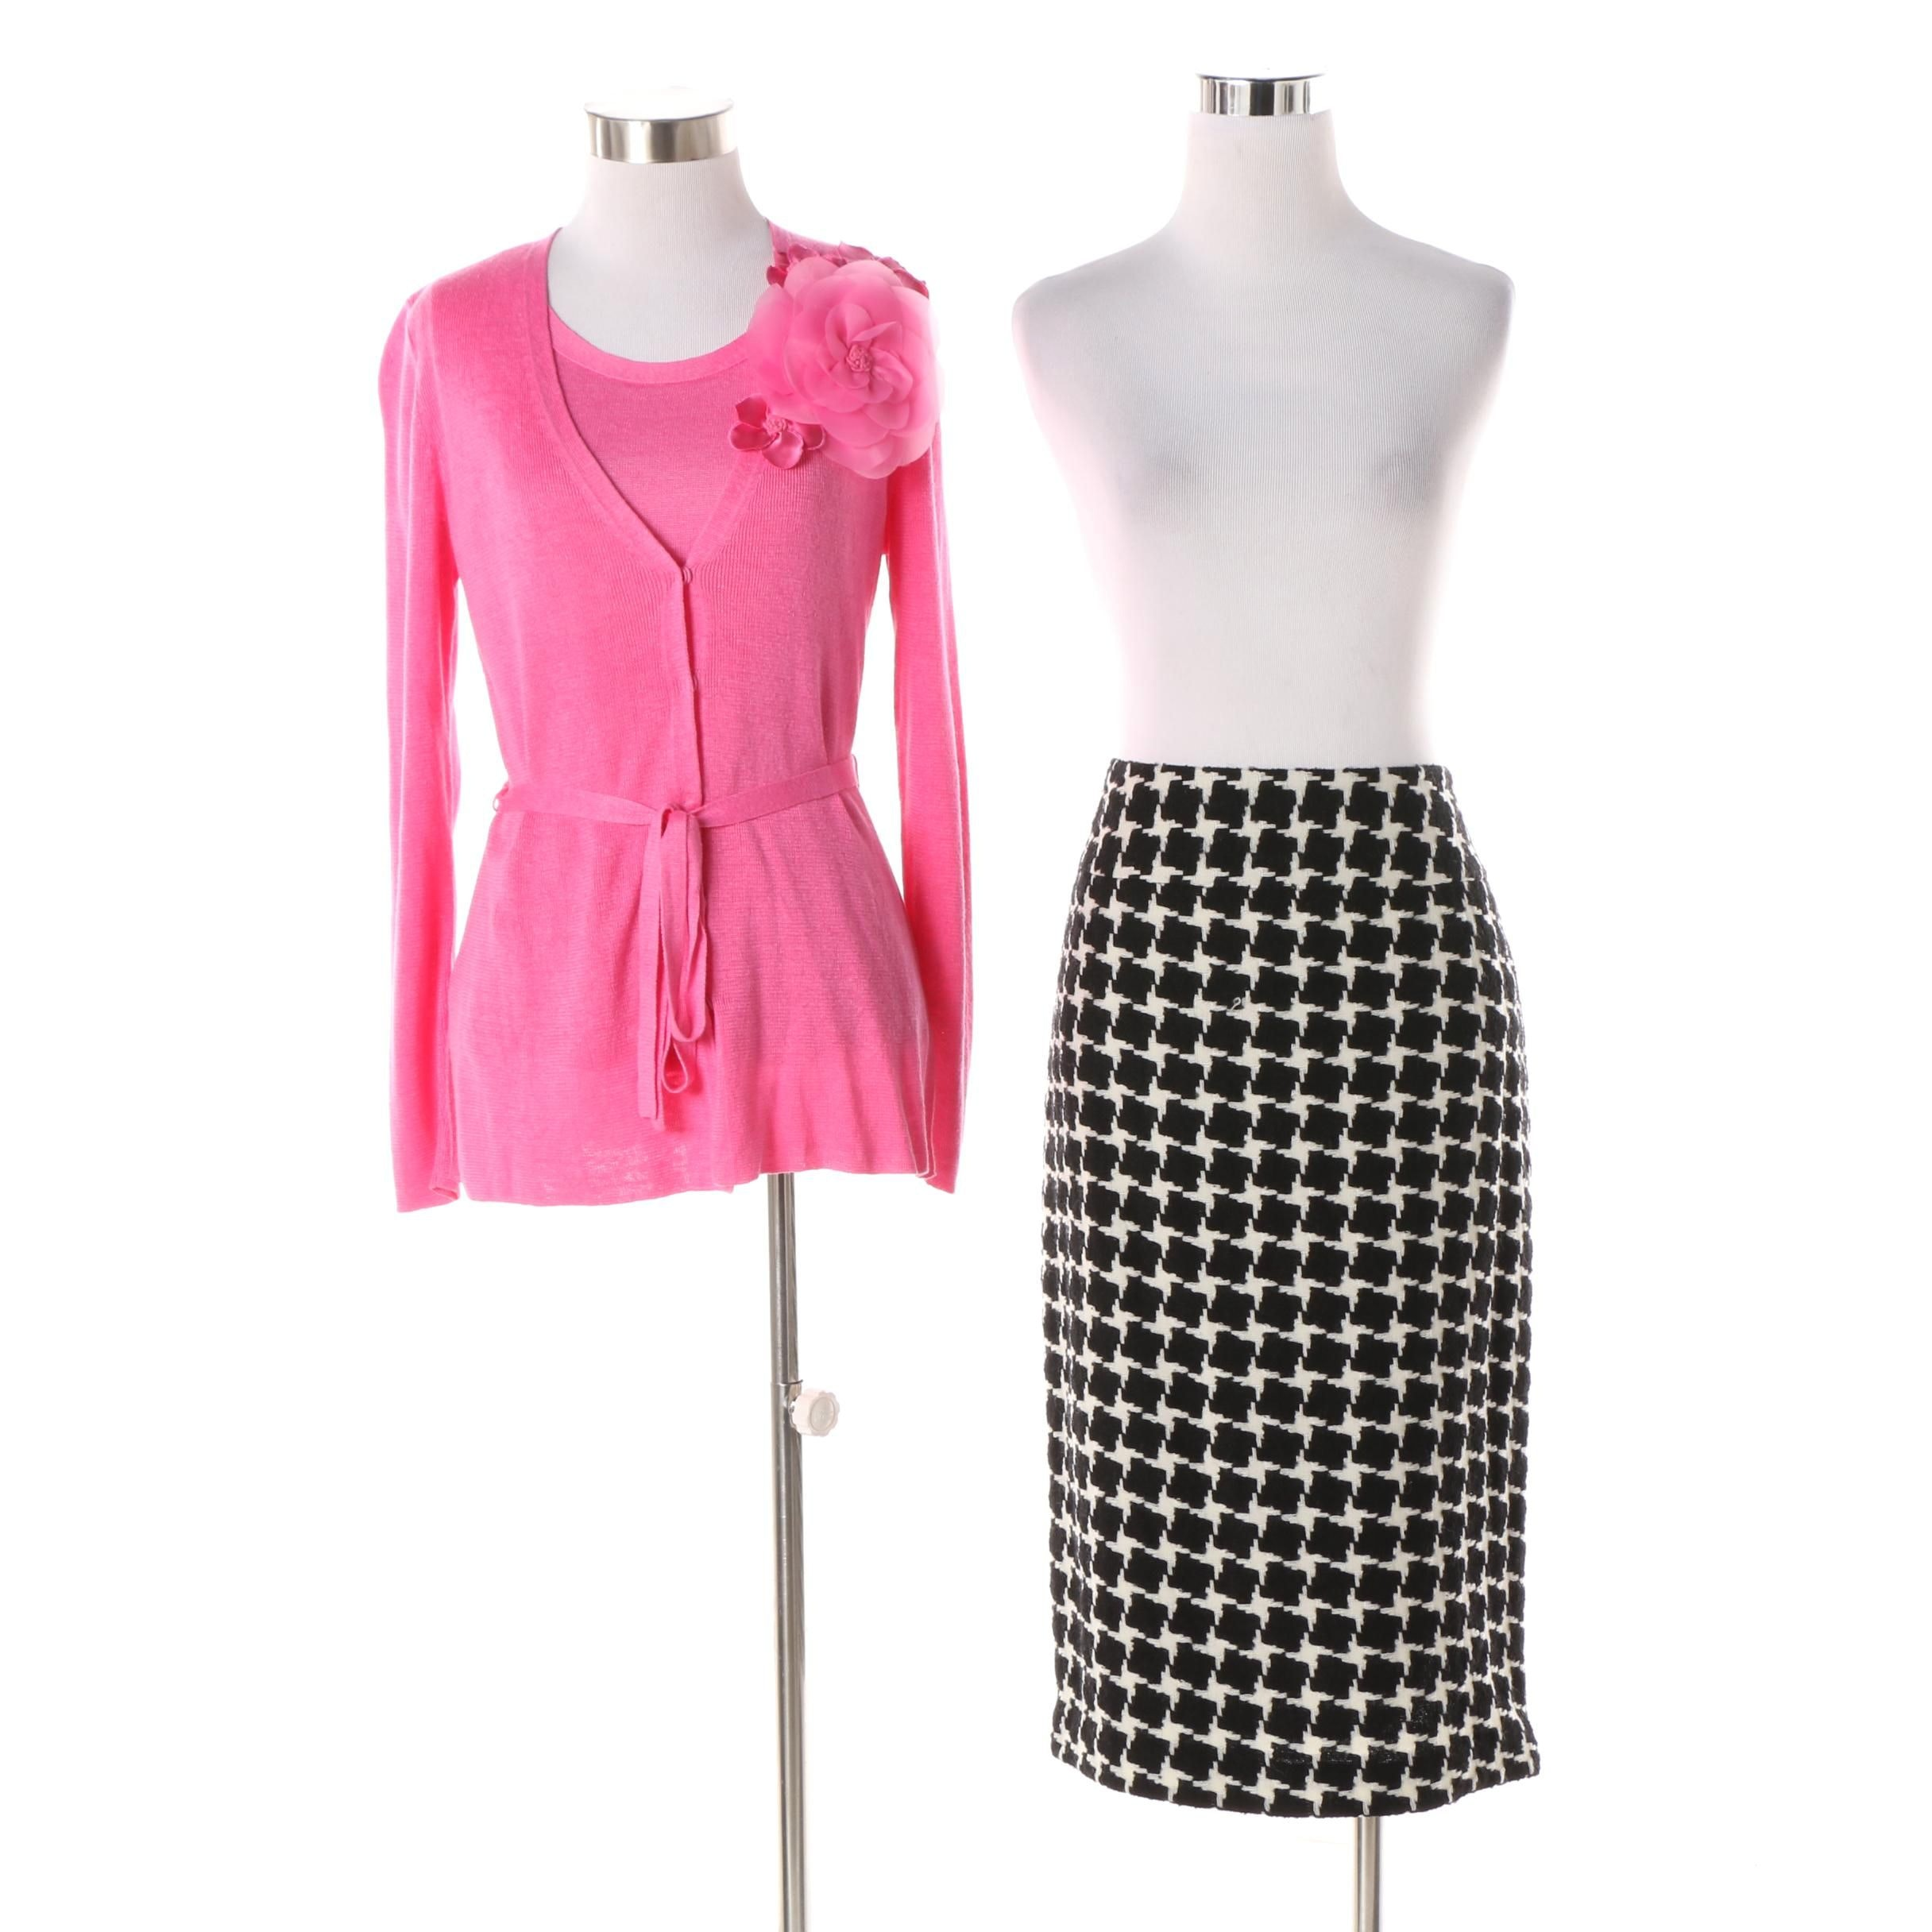 Women's Lafayette 148 New York Pink Sweater Set and Houndstooth Skirt